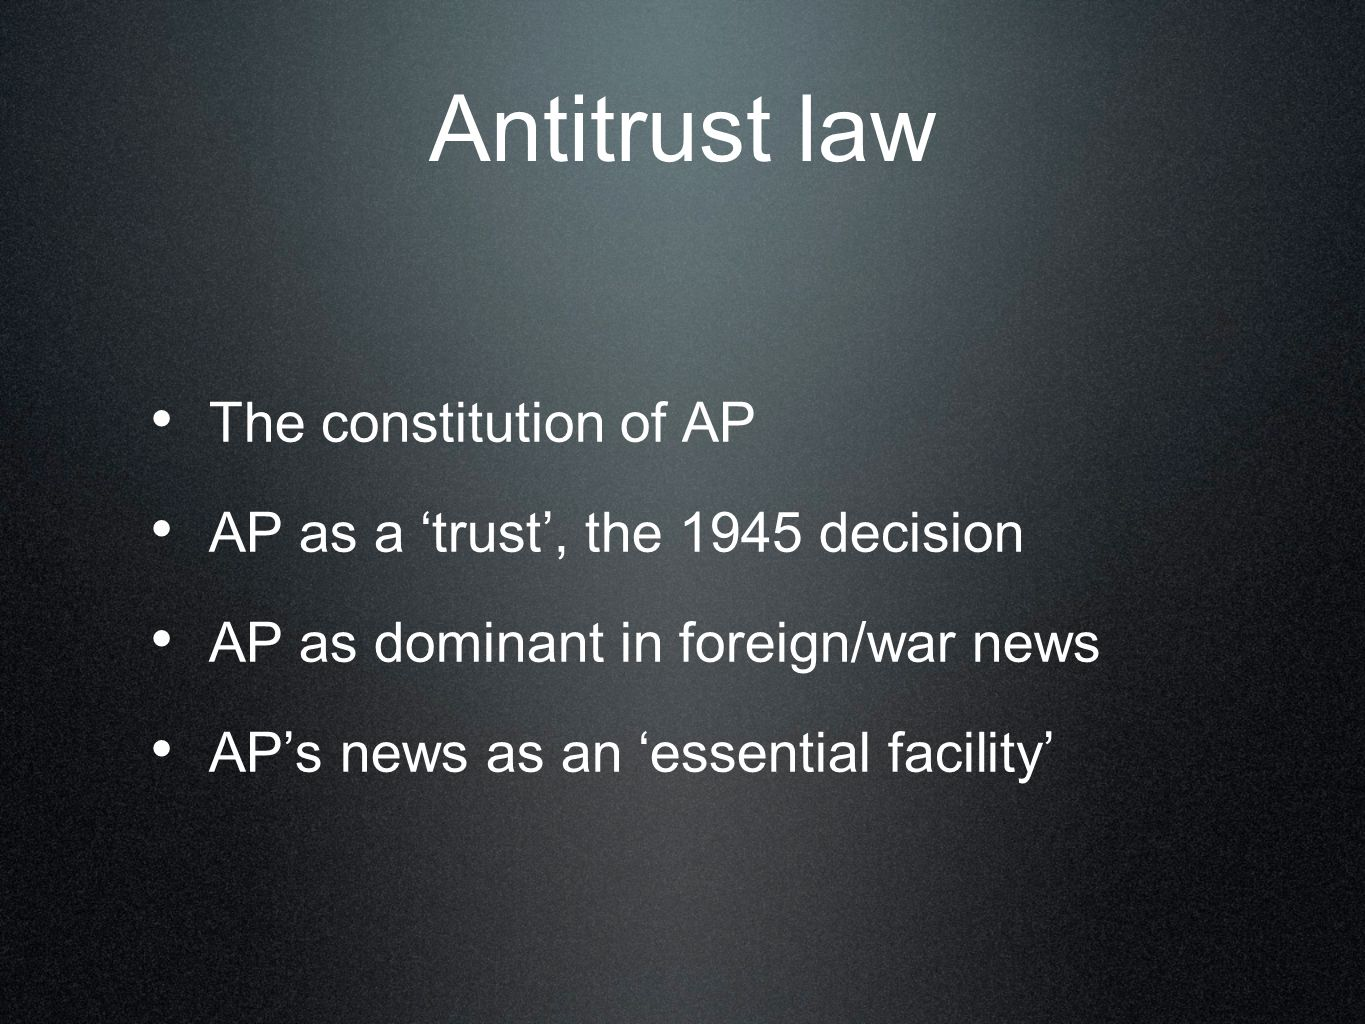 Antitrust law The constitution of AP AP as a 'trust', the 1945 decision AP as dominant in foreign/war news AP's news as an 'essential facility'